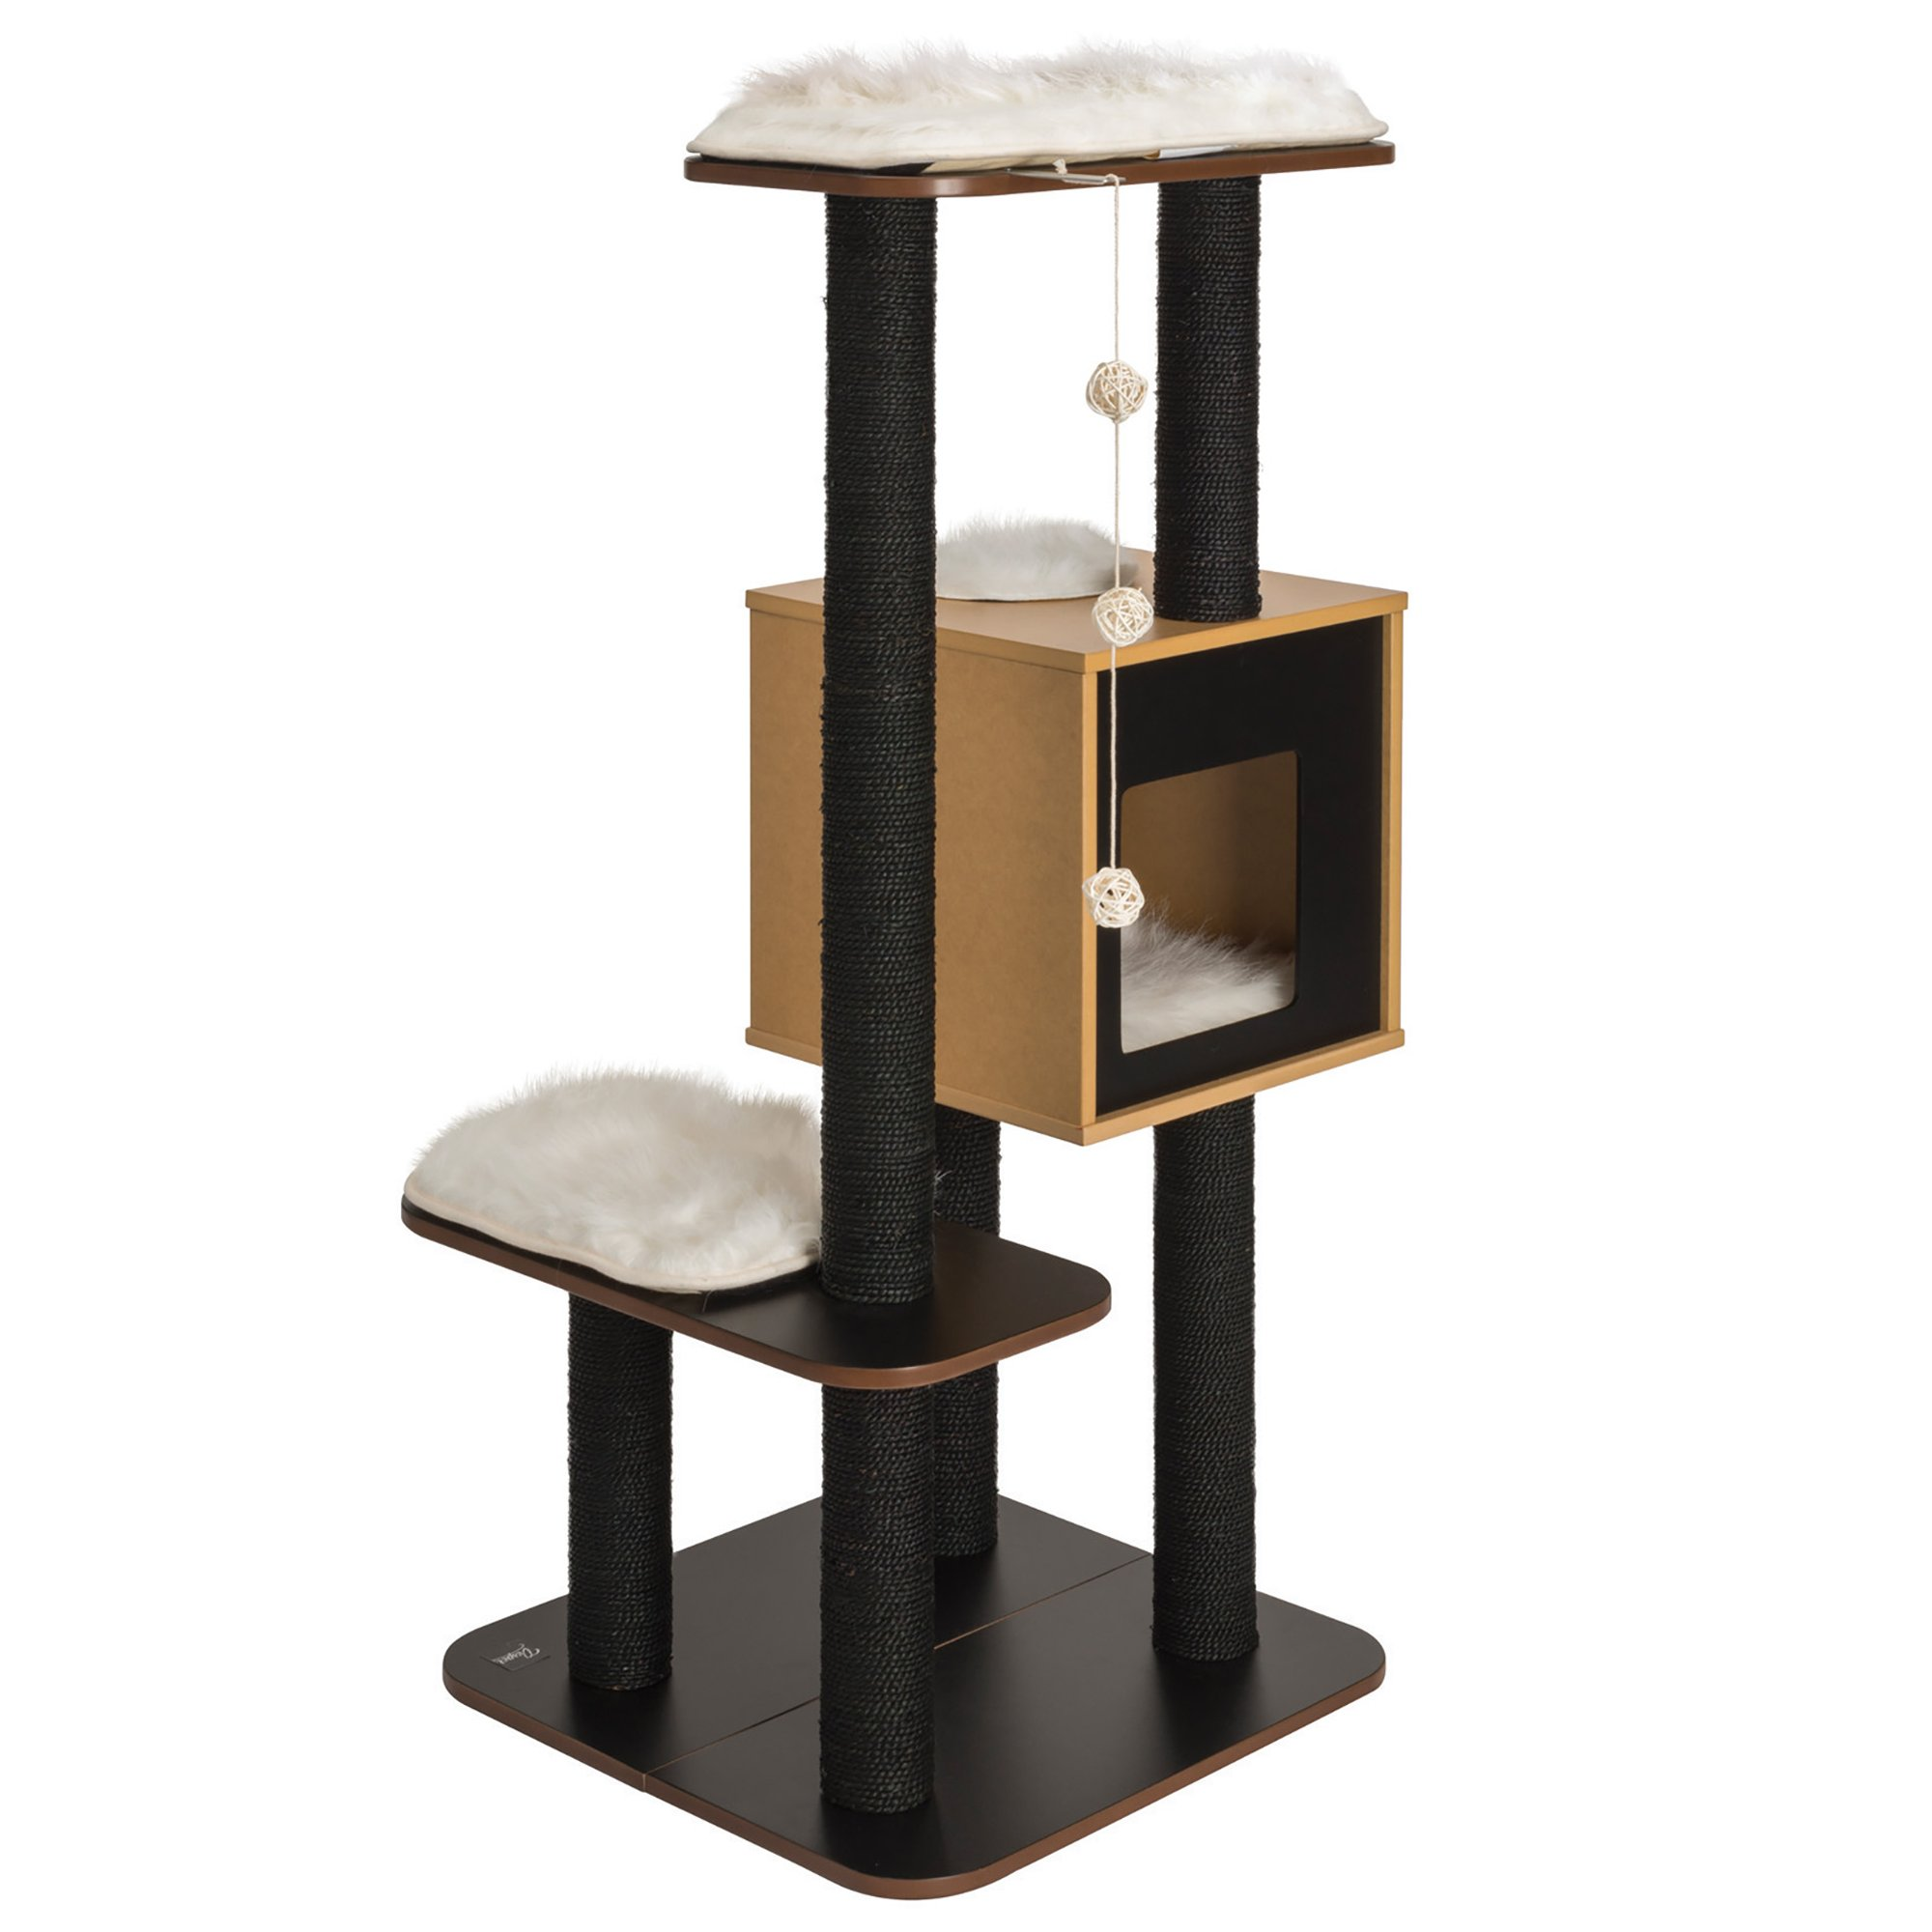 vesper v high base cat furniture petco. Black Bedroom Furniture Sets. Home Design Ideas